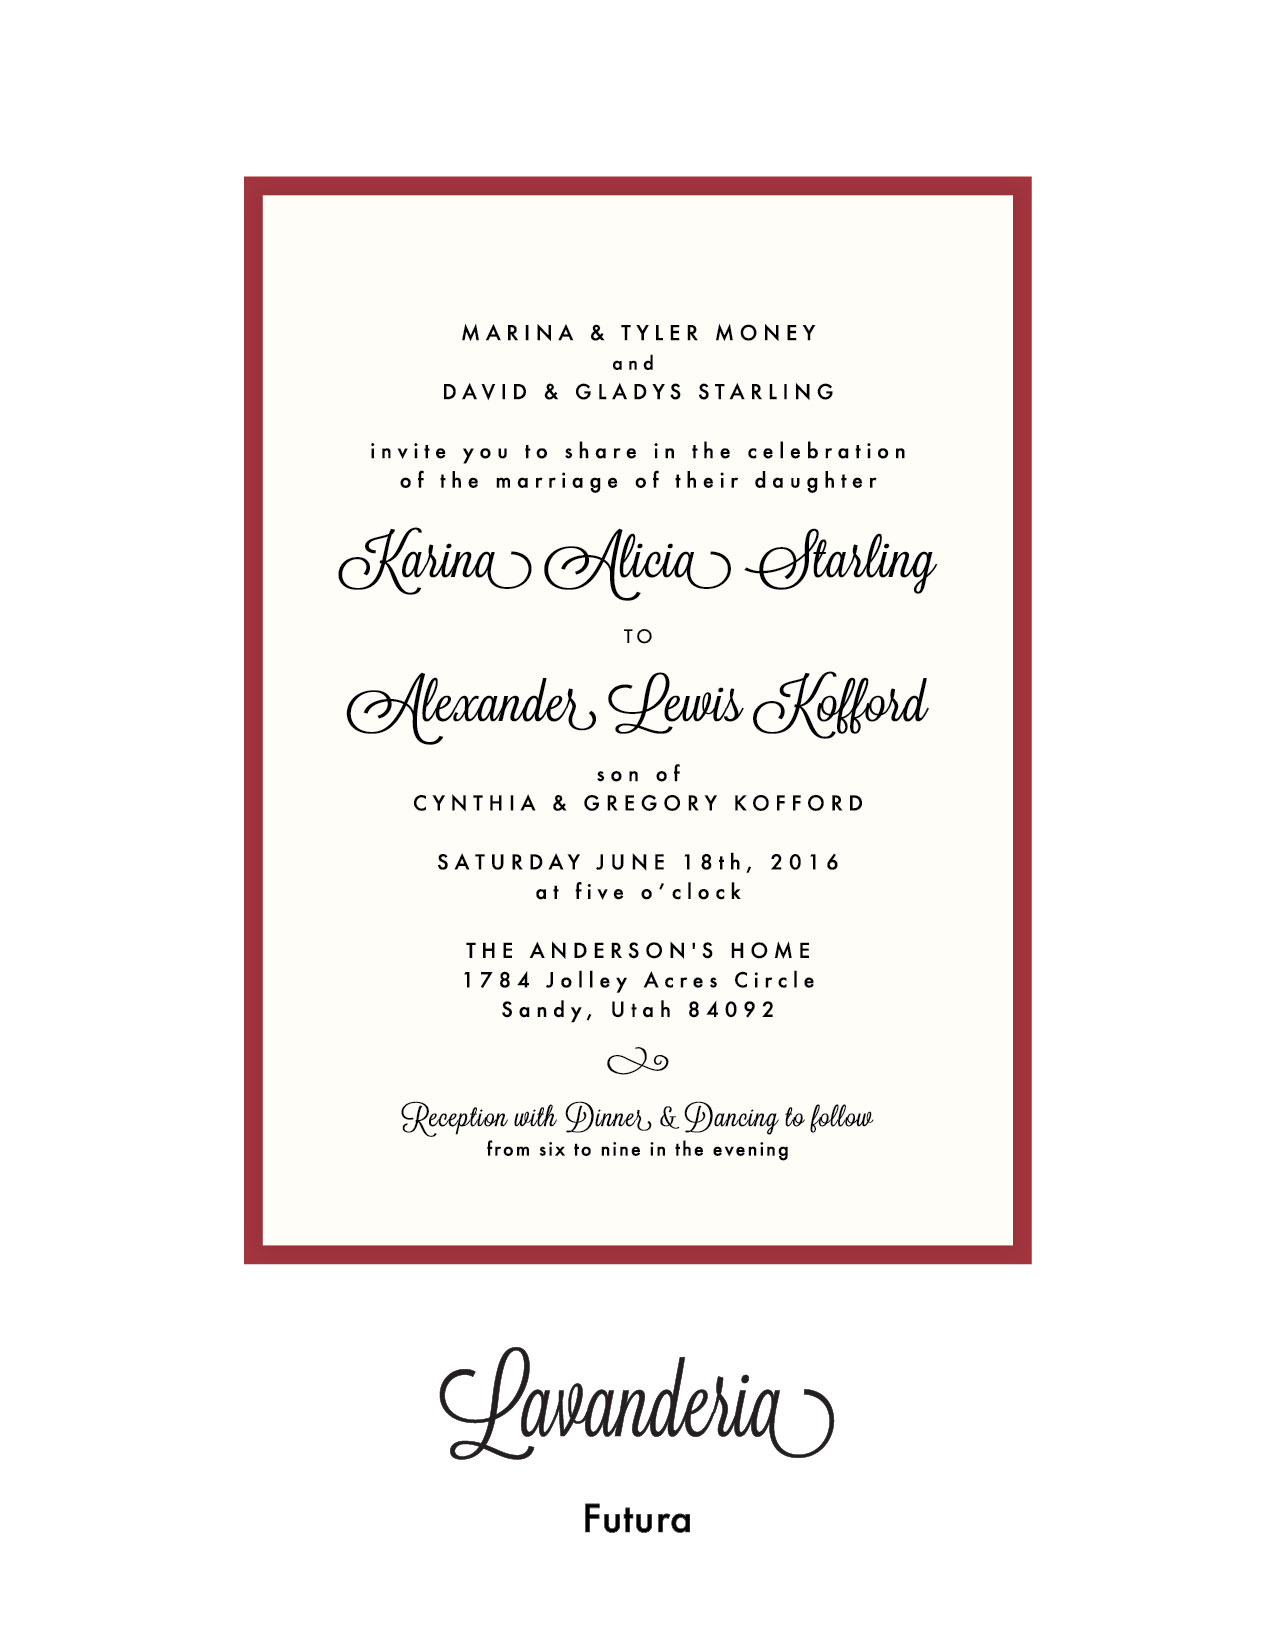 Wedding Fonts_Lavanderia.jpg